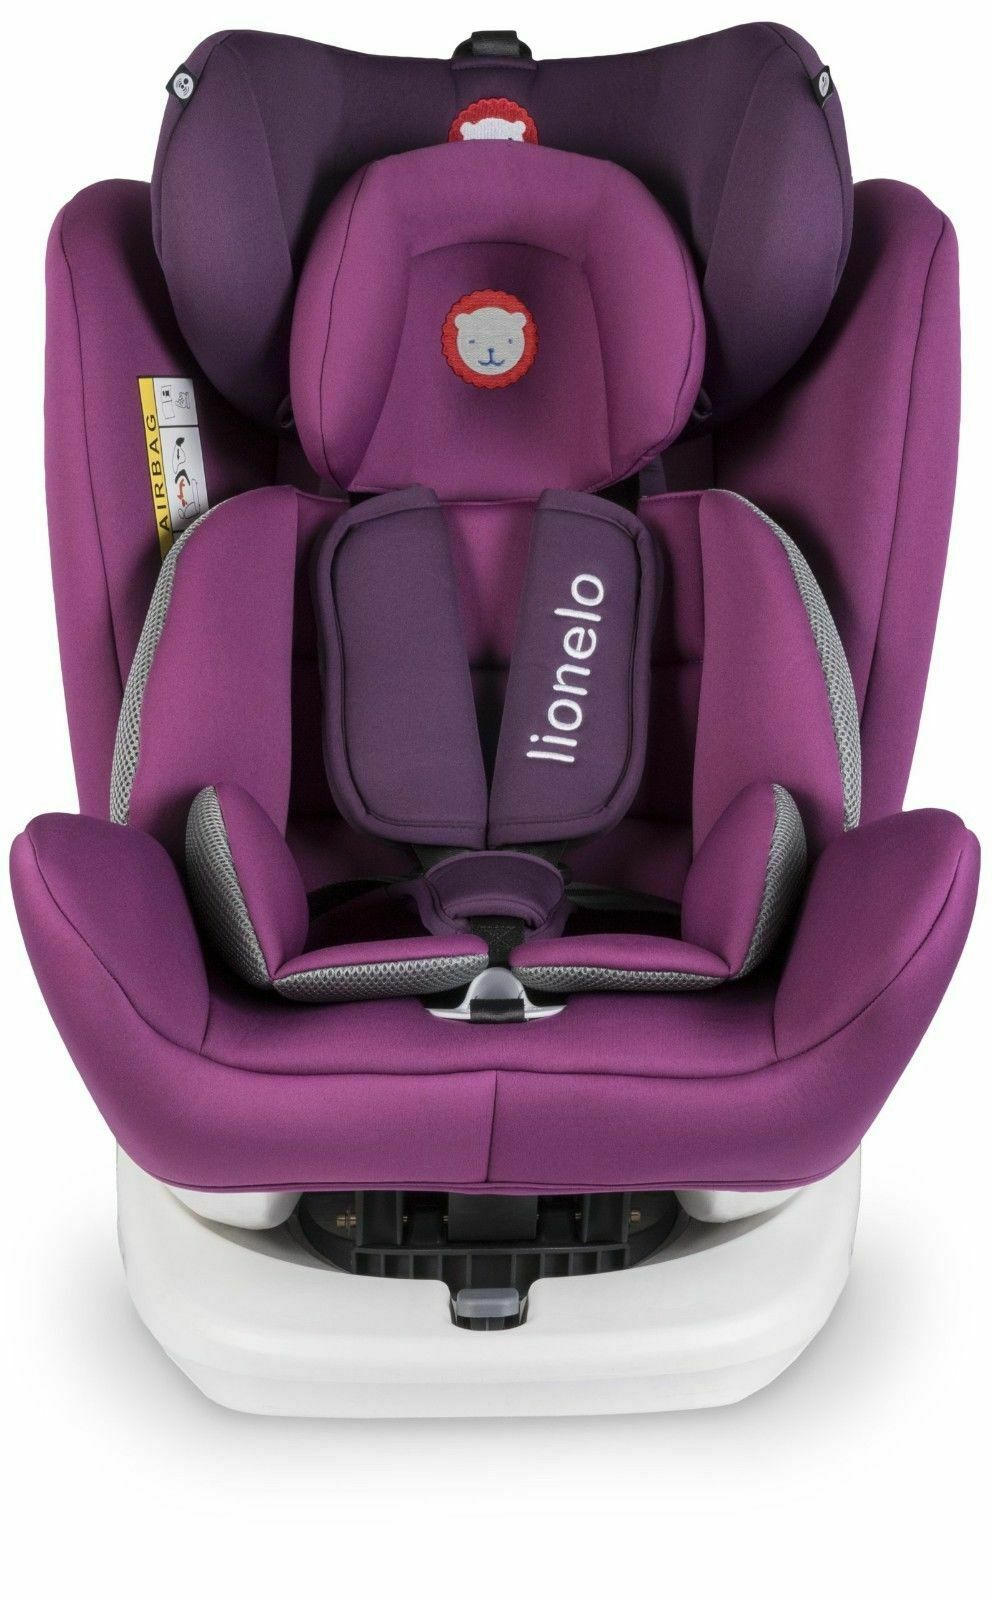 Joie Isofix Ebay Car Seat Lionelo Bastiaan Isofix 360 Top Tether 36 Kg Group 1 2 3